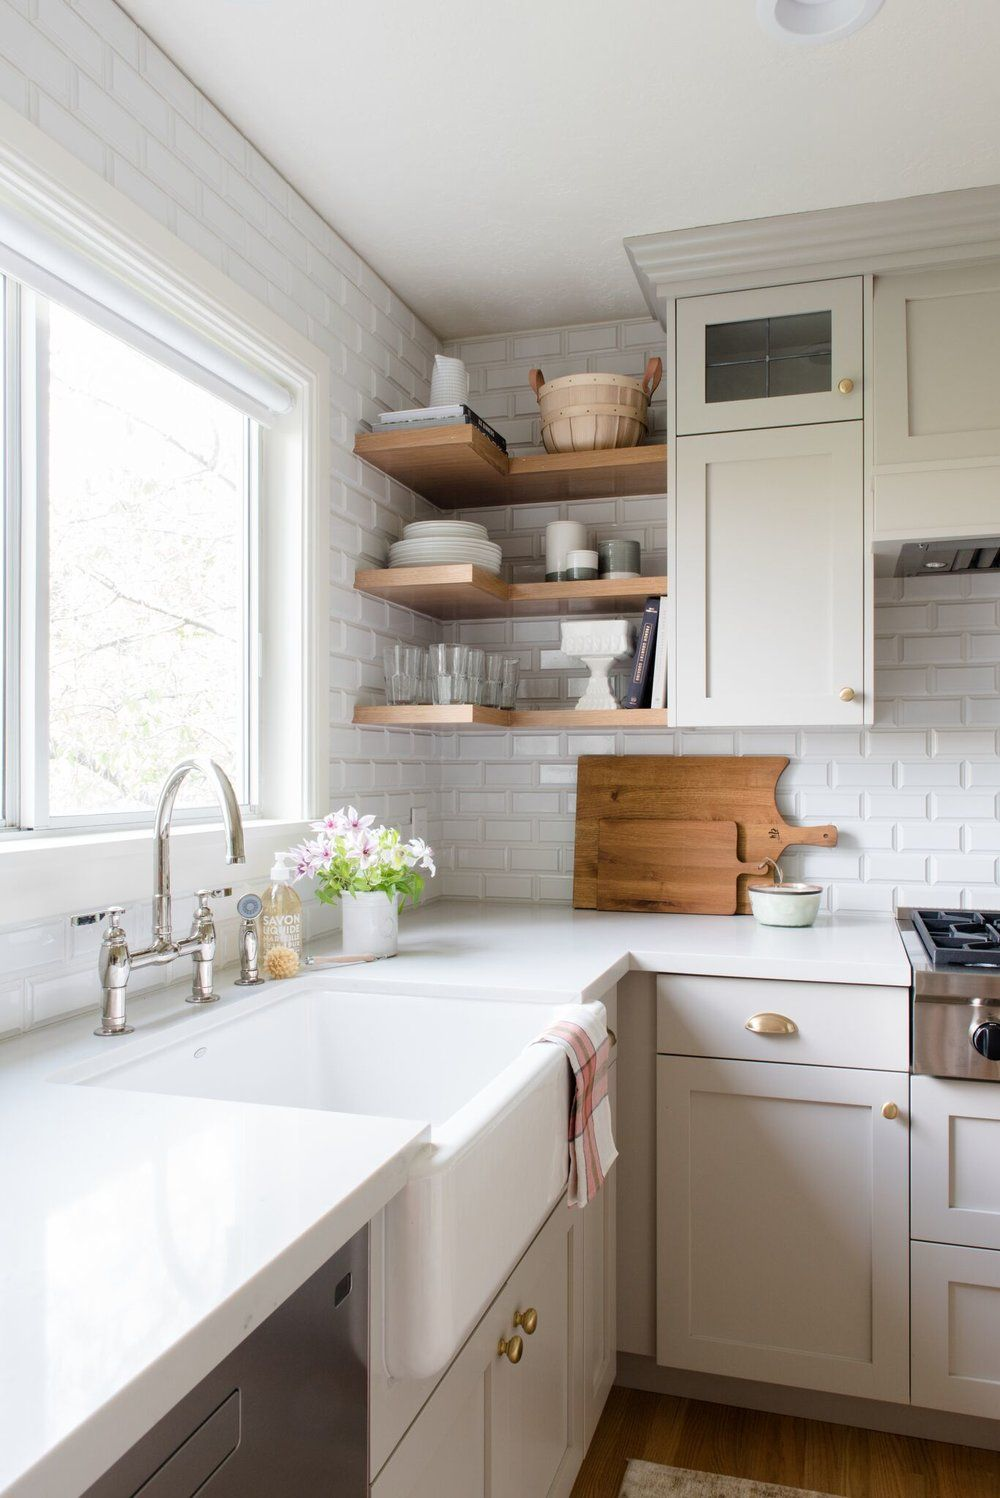 Evergreen kitchen remodel reveal neutral kitchen beveled subway